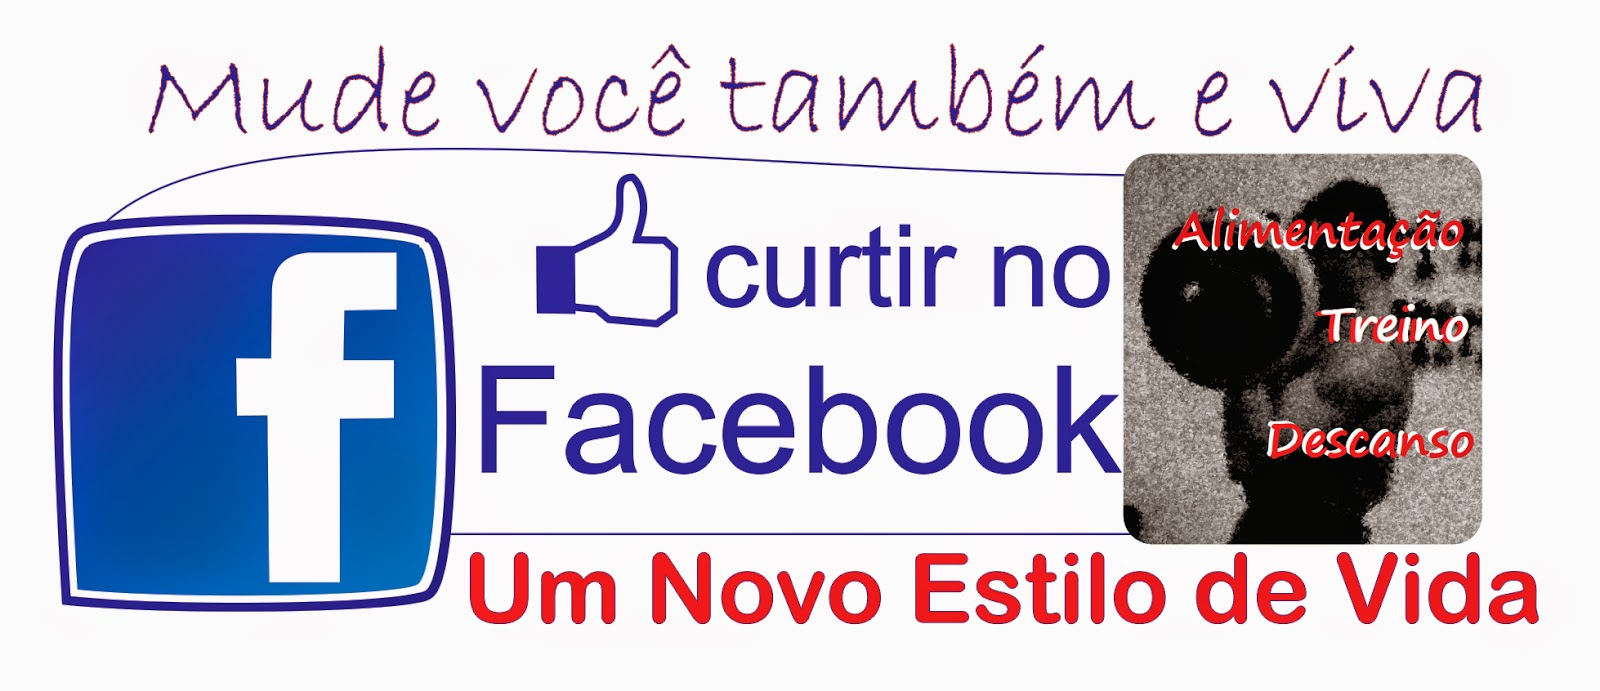 https://www.facebook.com/mudandoestilodevida?ref_type=bookmark